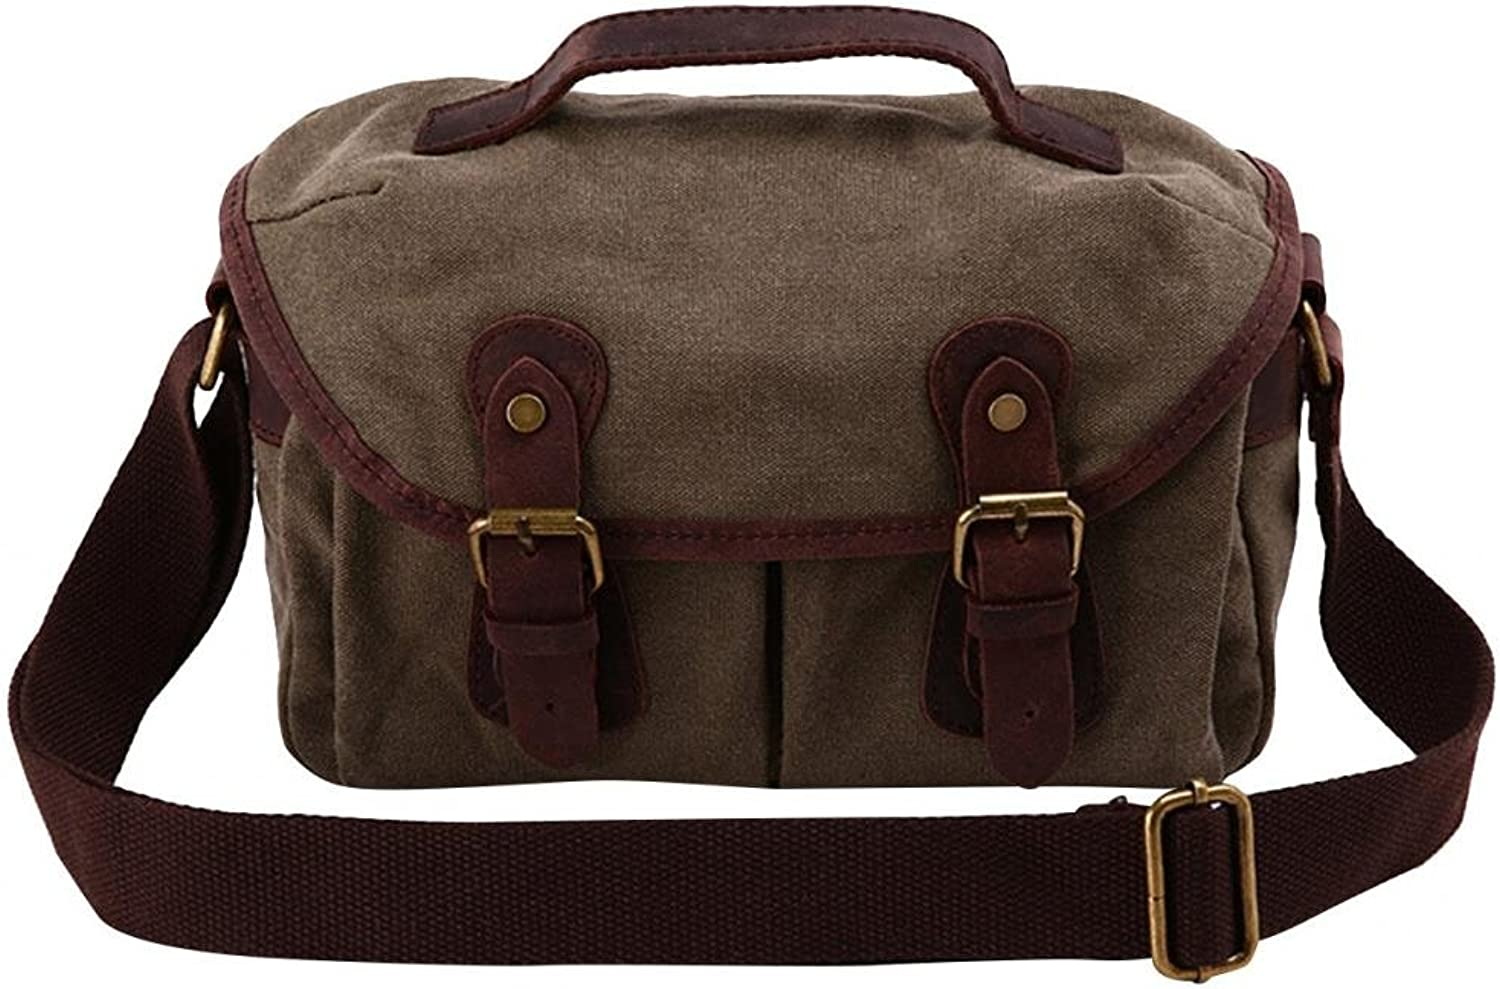 MedzRE Womens Vintage Satchel Canvas Cross Body Travel Bag